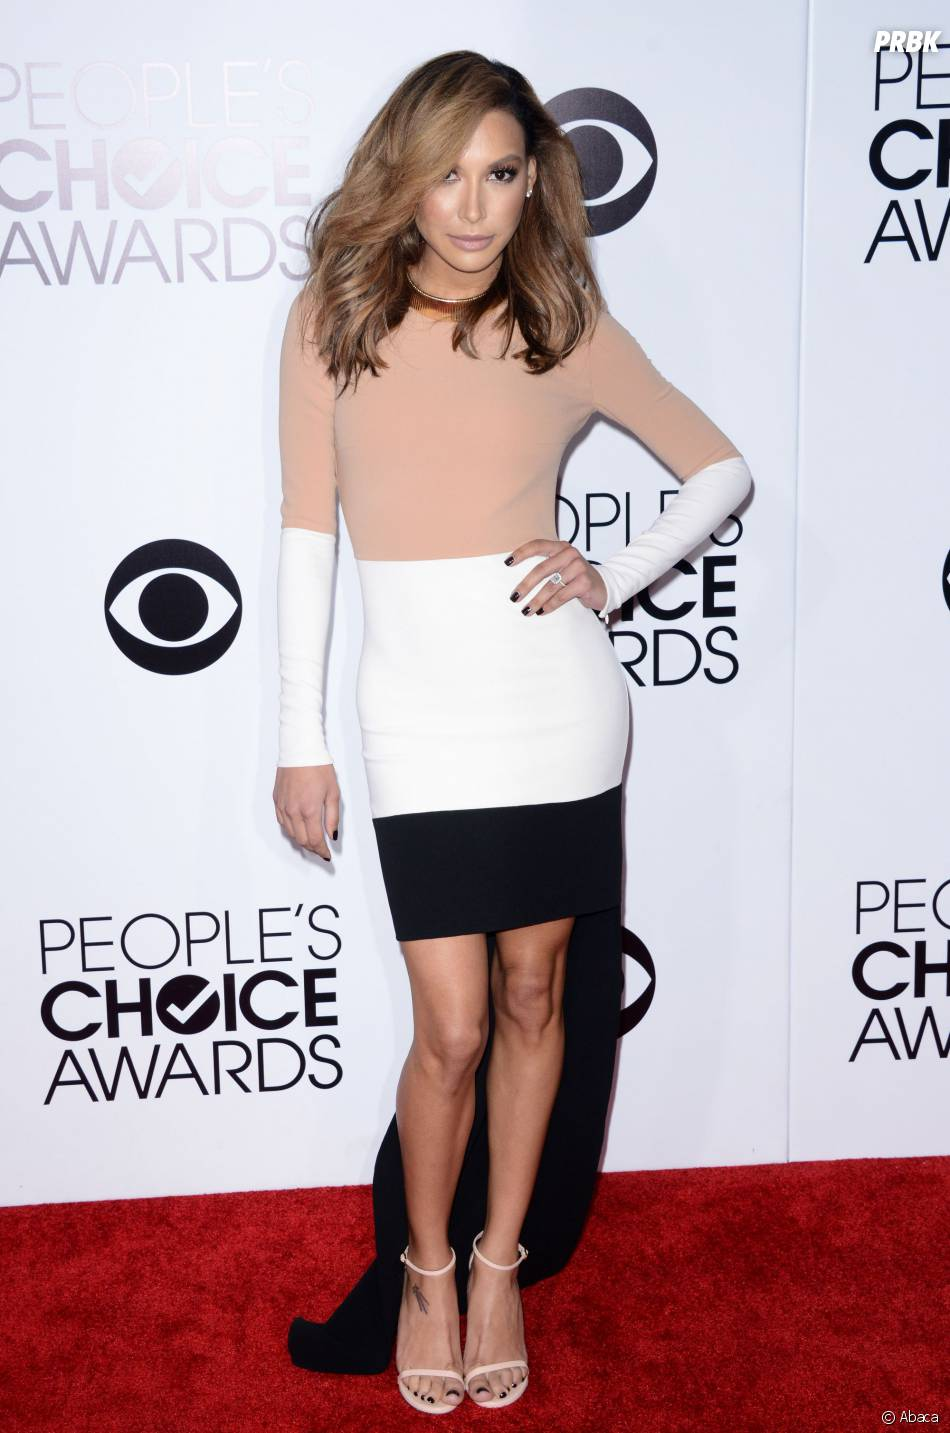 People's Choice Awards 2014 : Naya Rivera sur le tapis-rouge le 8 janvier 2014 à Los Angeles